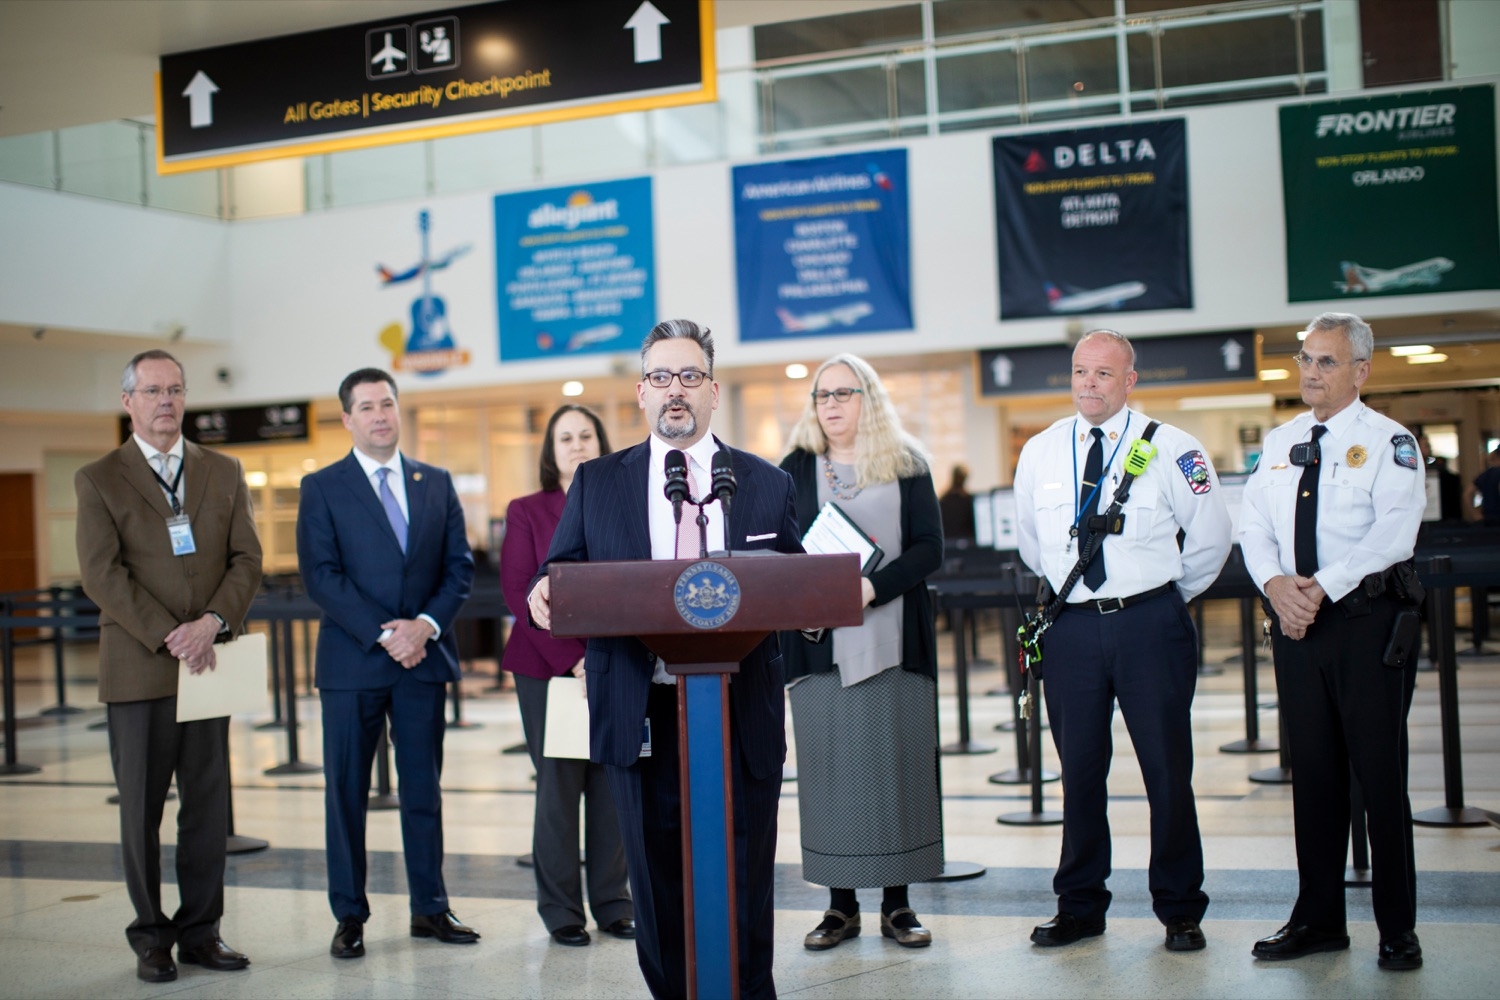 "<a href=""https://filesource.wostreaming.net/commonwealthofpa/photo/17806_DOH_Naloxone_Airports_NK_010.JPG"" target=""_blank"">⇣ Download Photo<br></a>Ray Barishansky, deputy secretary for Health Preparedness and Community Protection with the Pennsylvania Department of Health, speaks at a press conference, which announced that the Wolf Administration will be providing free naloxone to Pennsylvania airports as part of an ongoing effort to expand access to the life-saving medication and decrease opioid overdoses across the commonwealth, inside Harrisburg International Airport on Thursday, February 27, 2020."